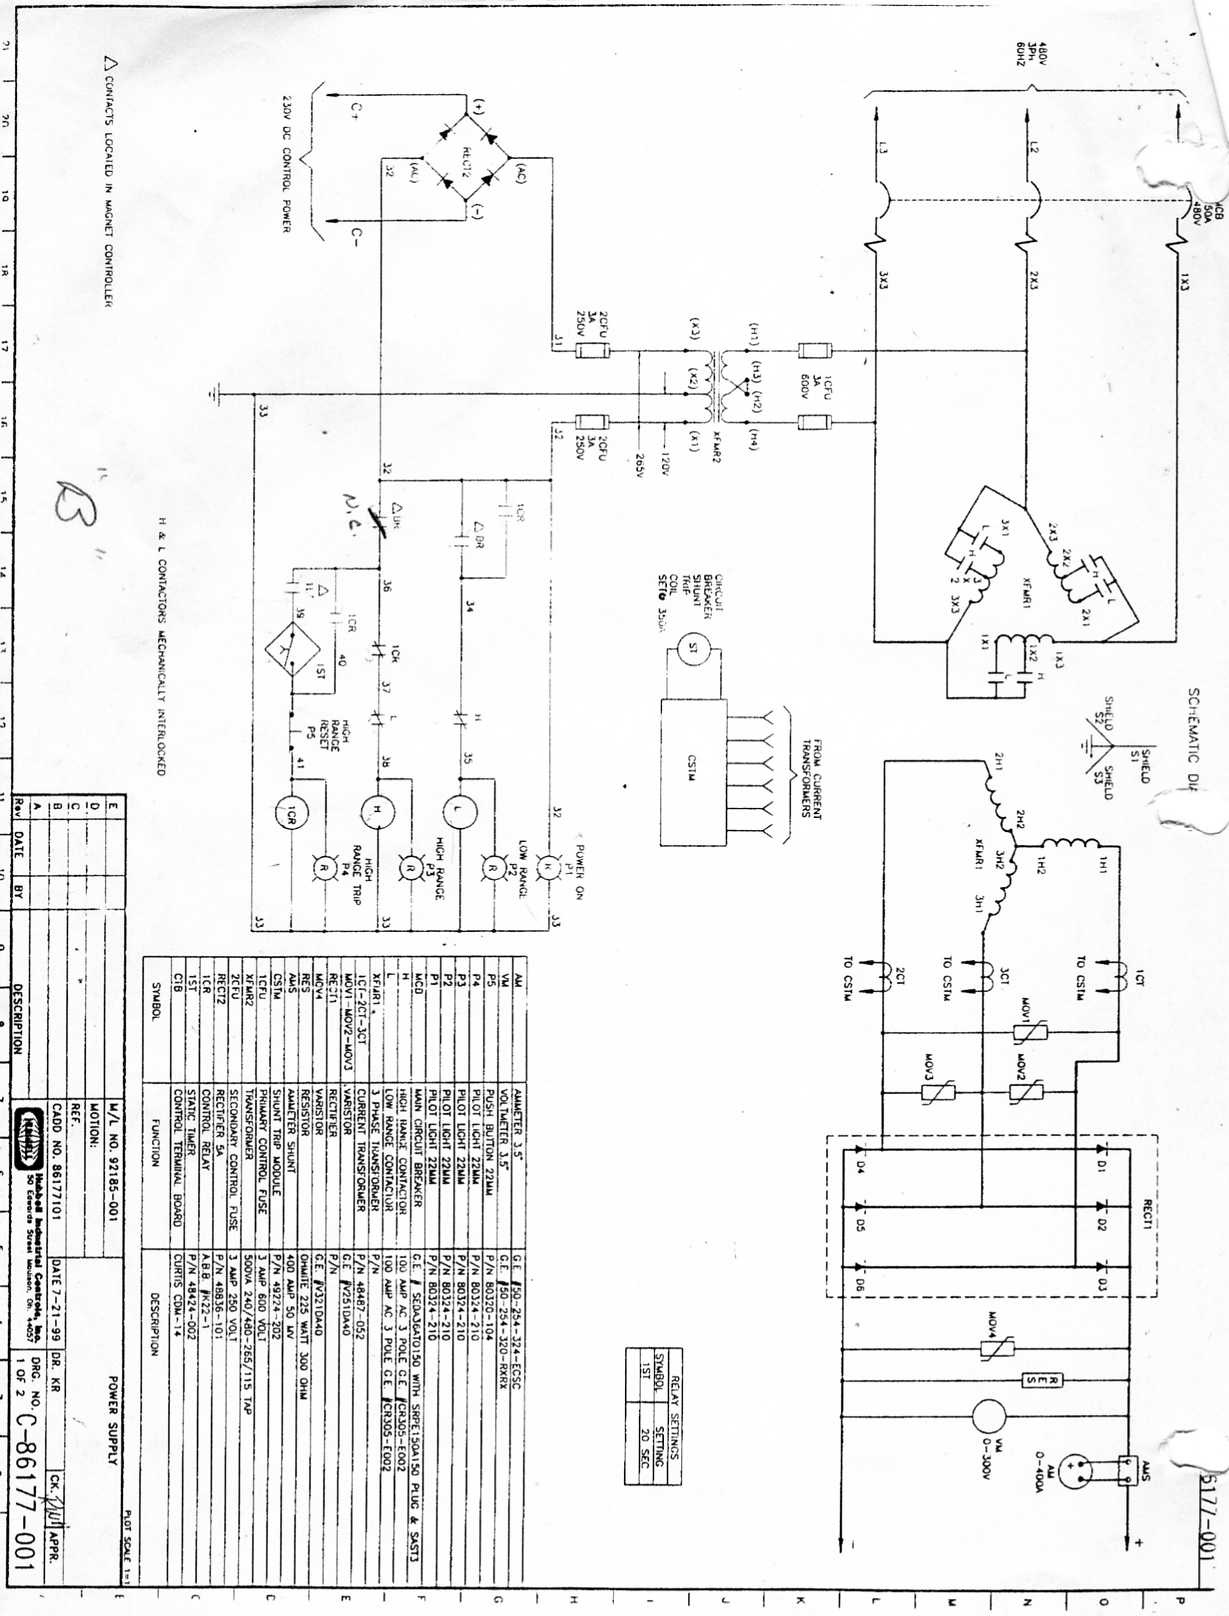 hubbell magnet controller wiring diagrams